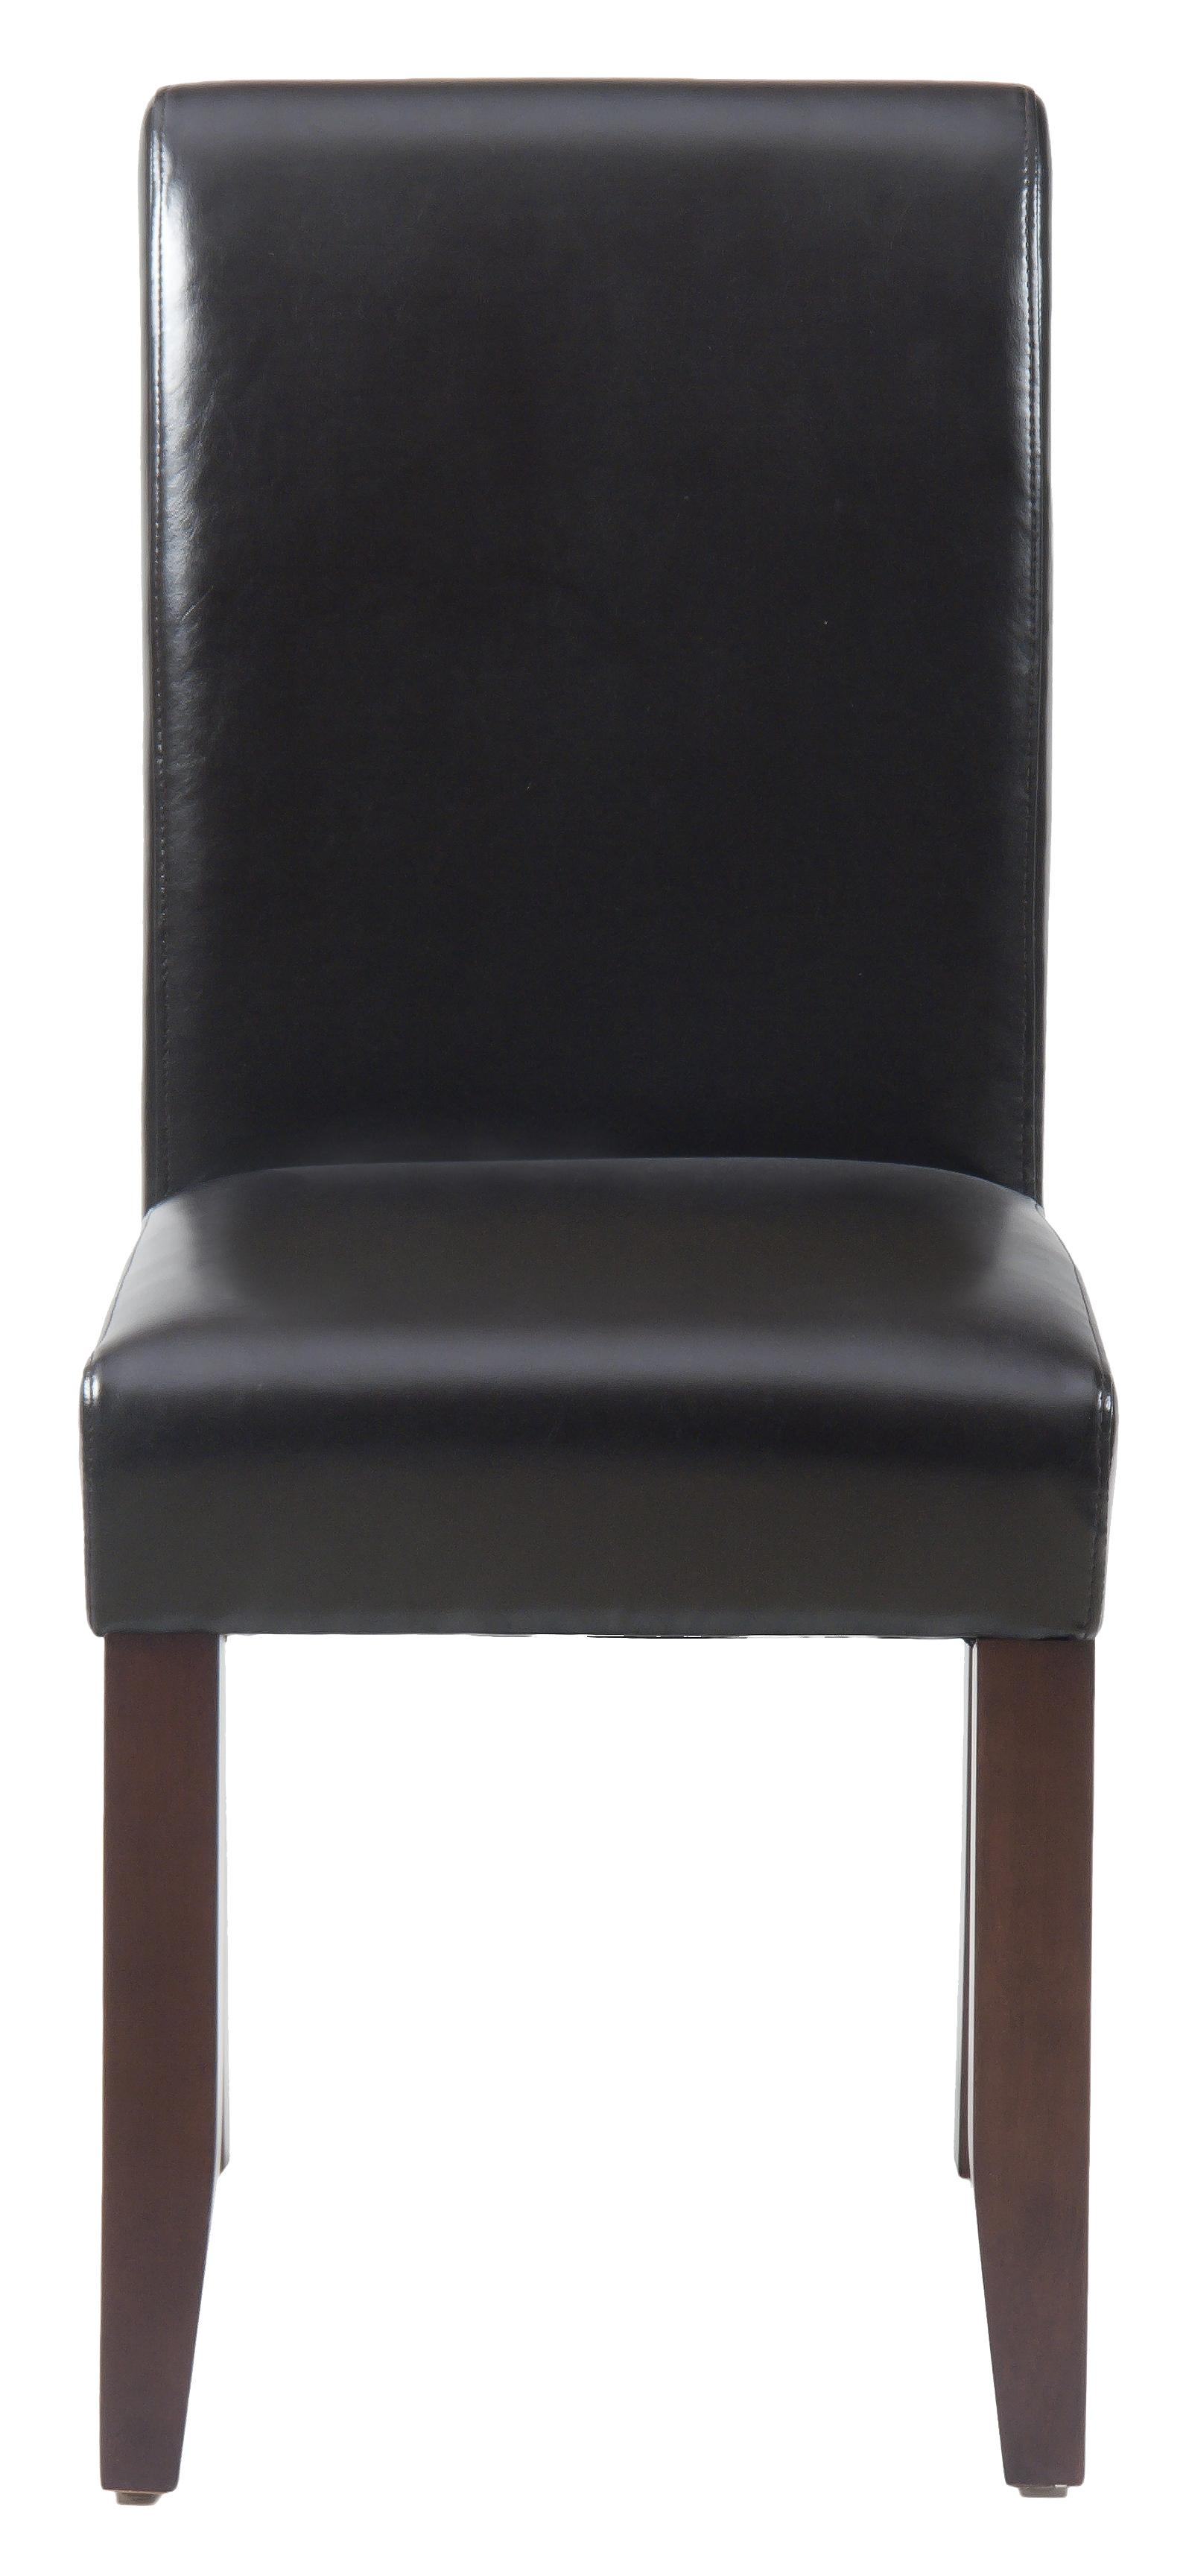 Jofran Carlsbad Cherry Chestnut Bonded Leather Chair - Item Number: 888-480KD